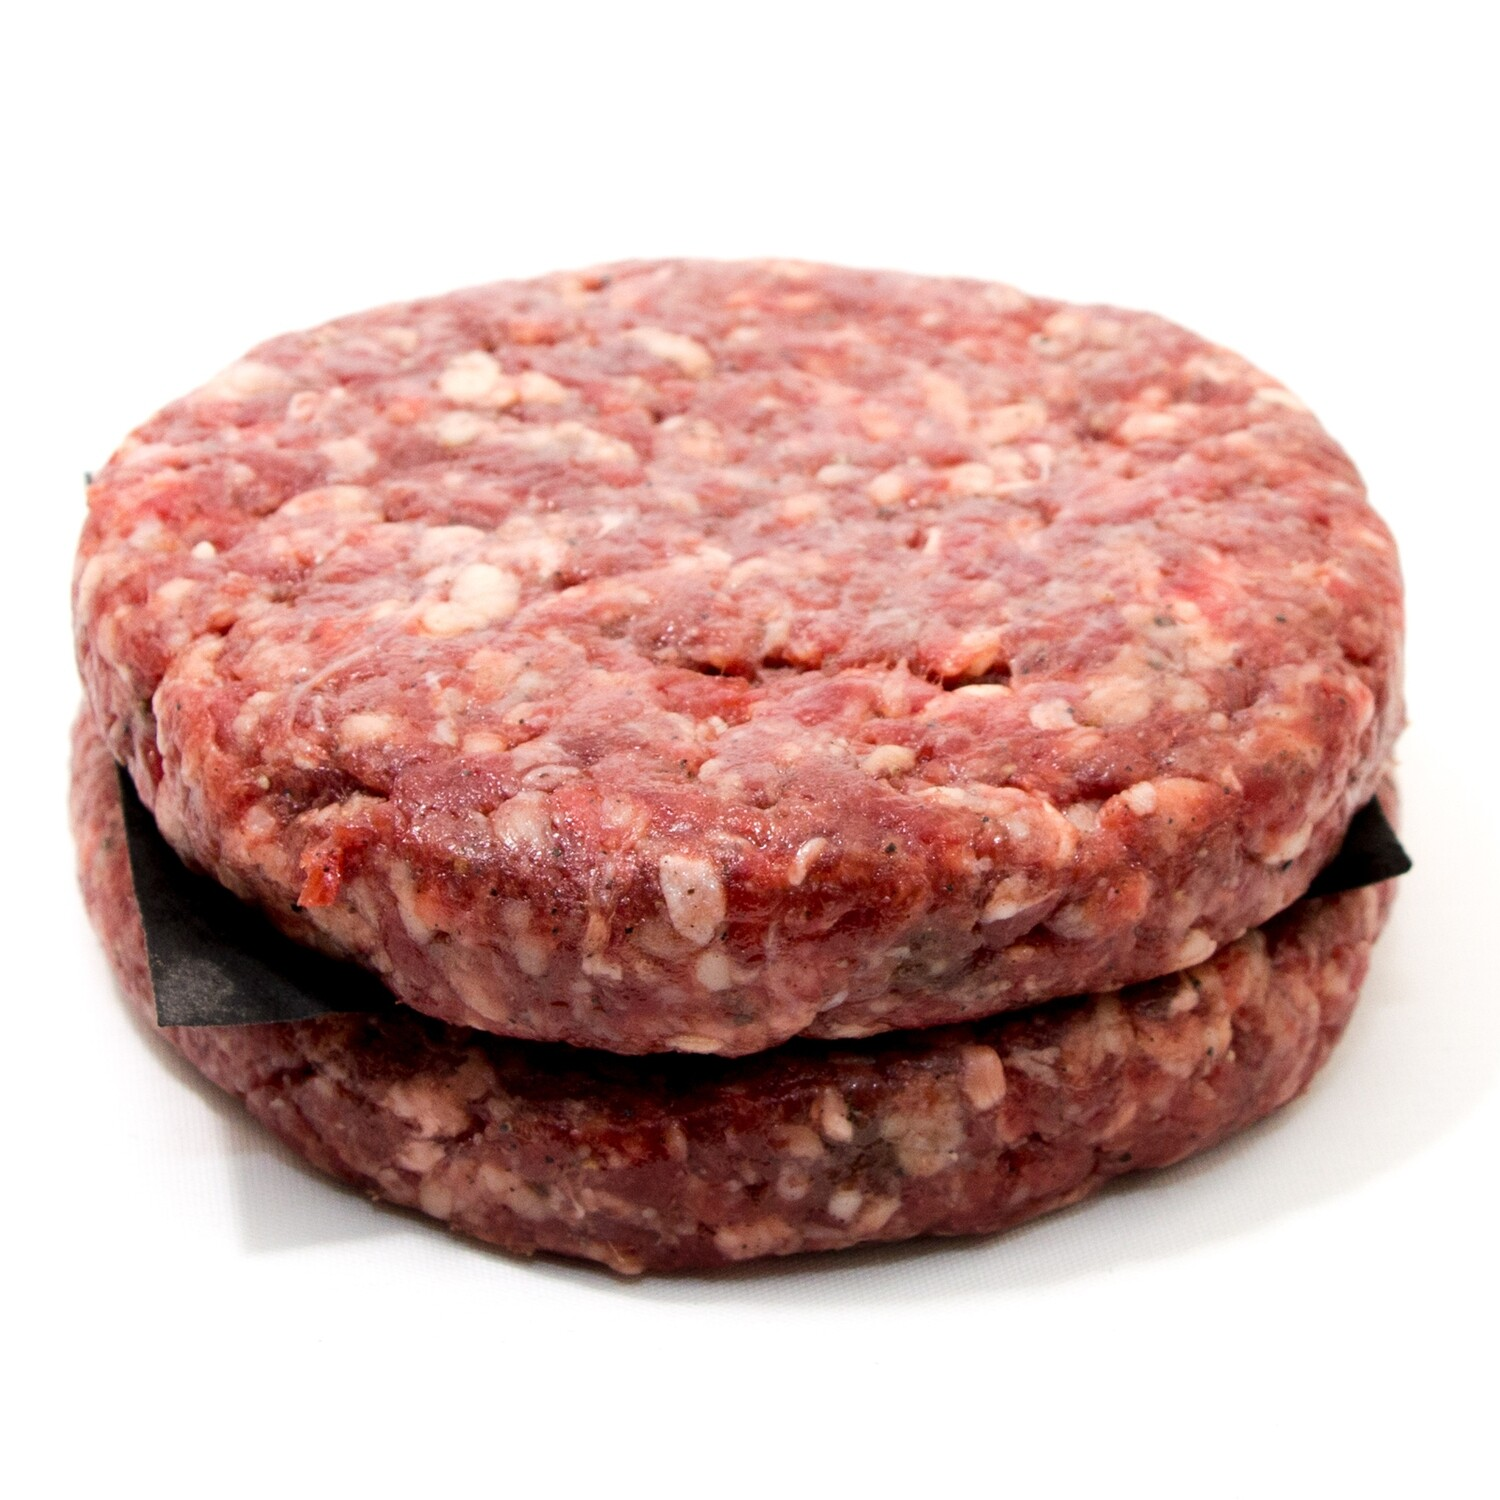 Beef Burgers 6 Pack - LOCAL Magnolia Meat